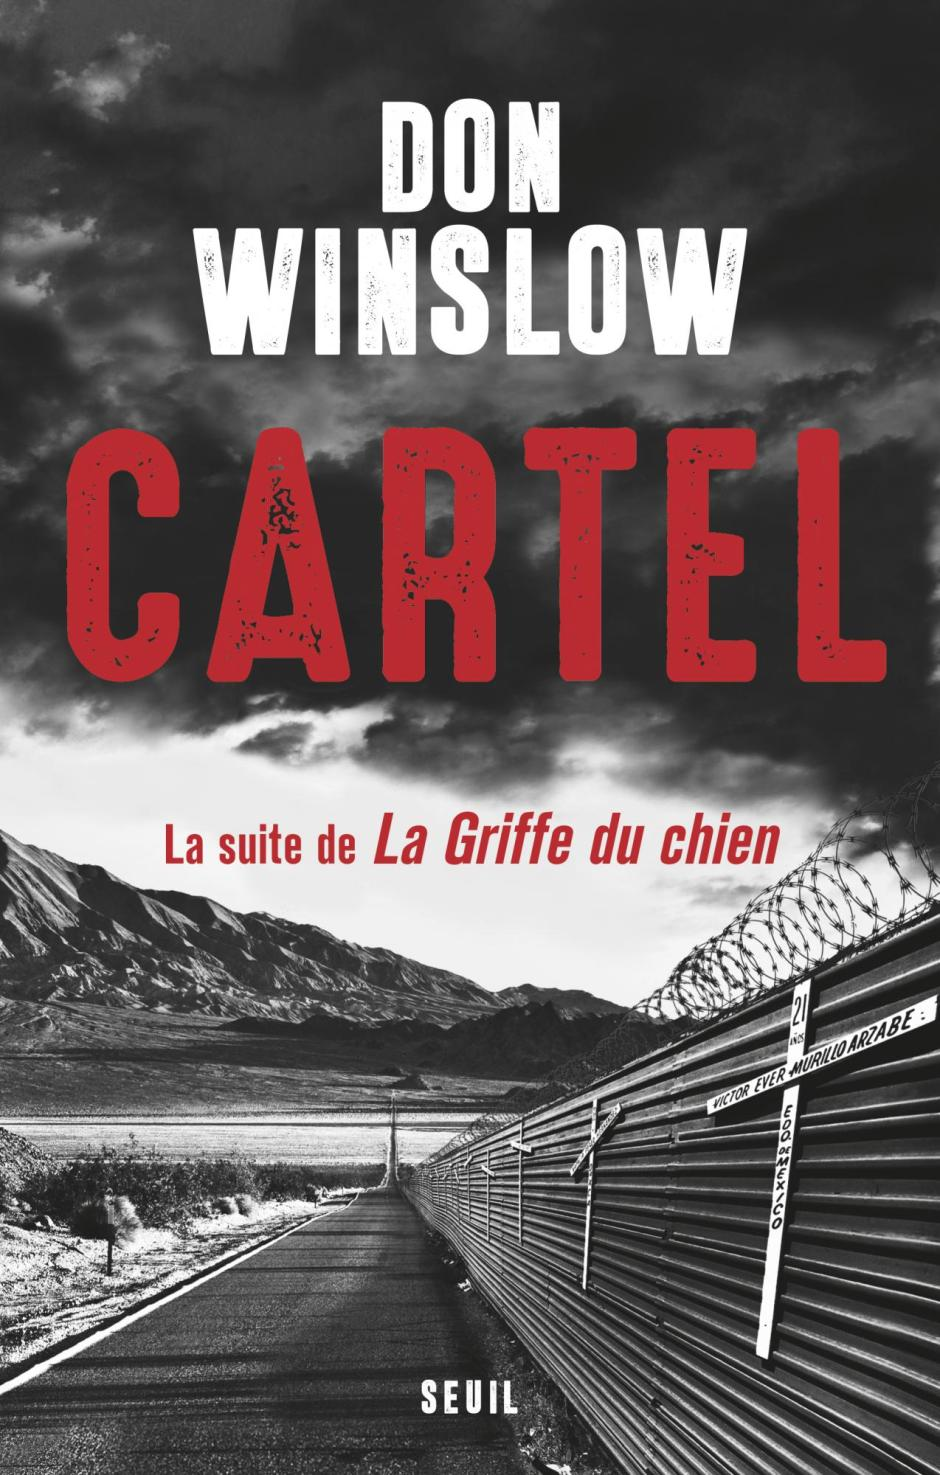 Cartel don winslow